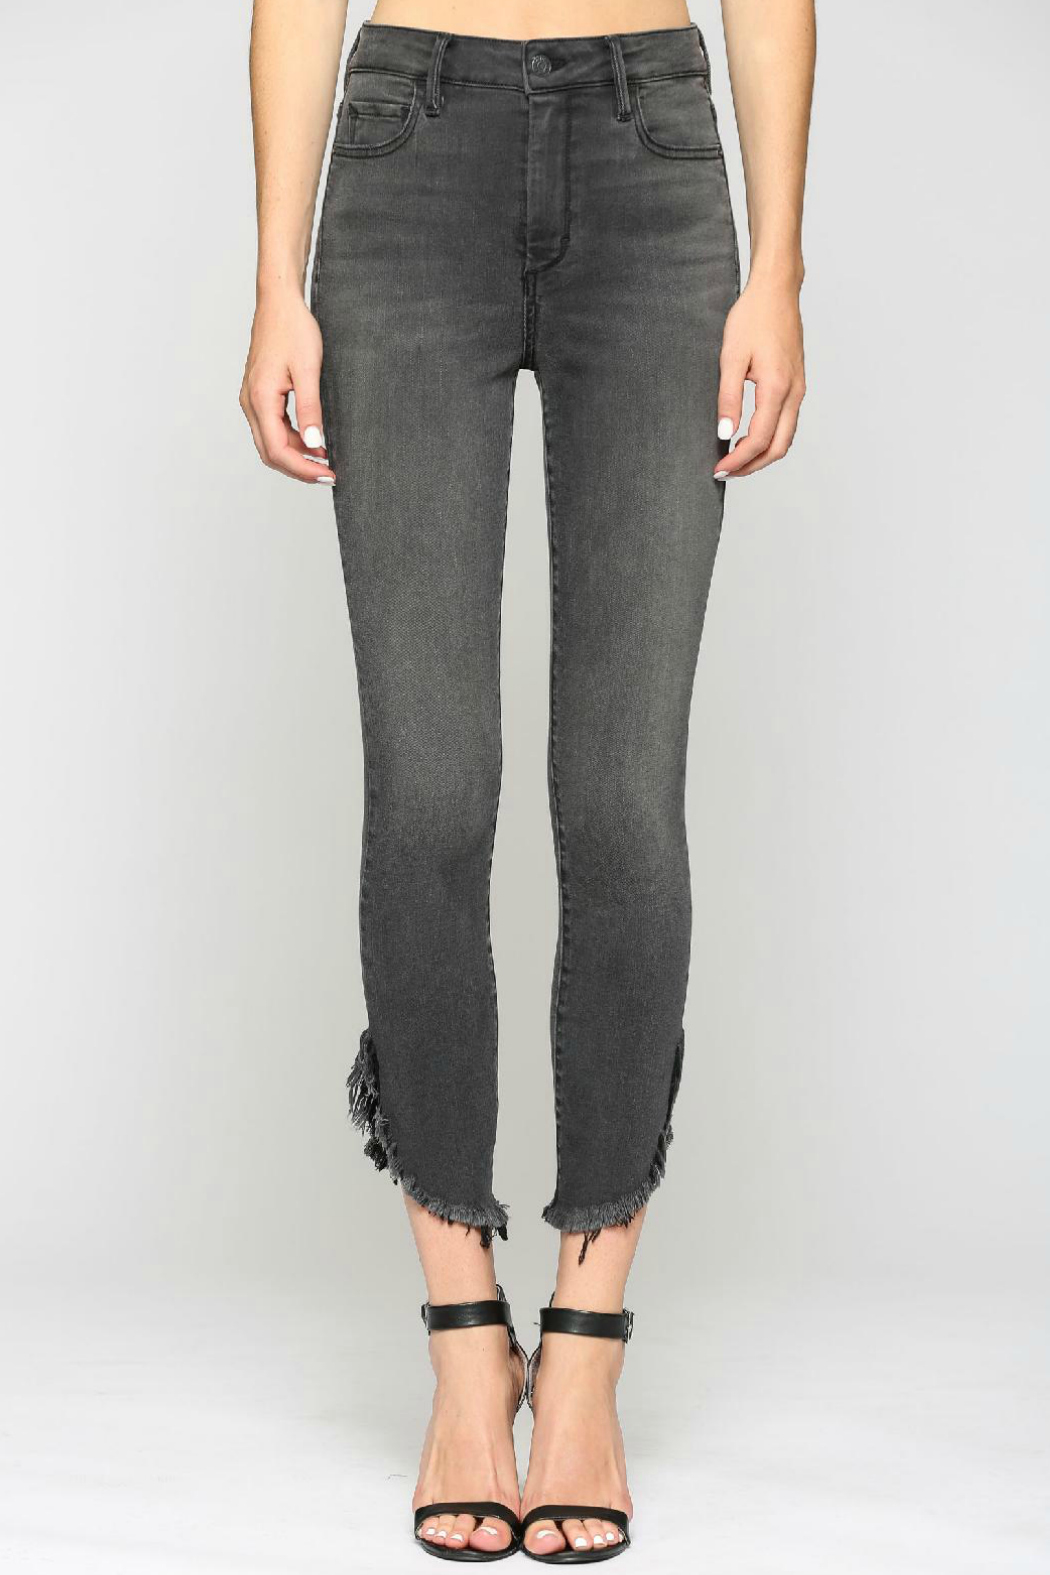 Hidden Jeans TAYLOR GREY HIGH RISE FRAYED SKINNY - Main Image